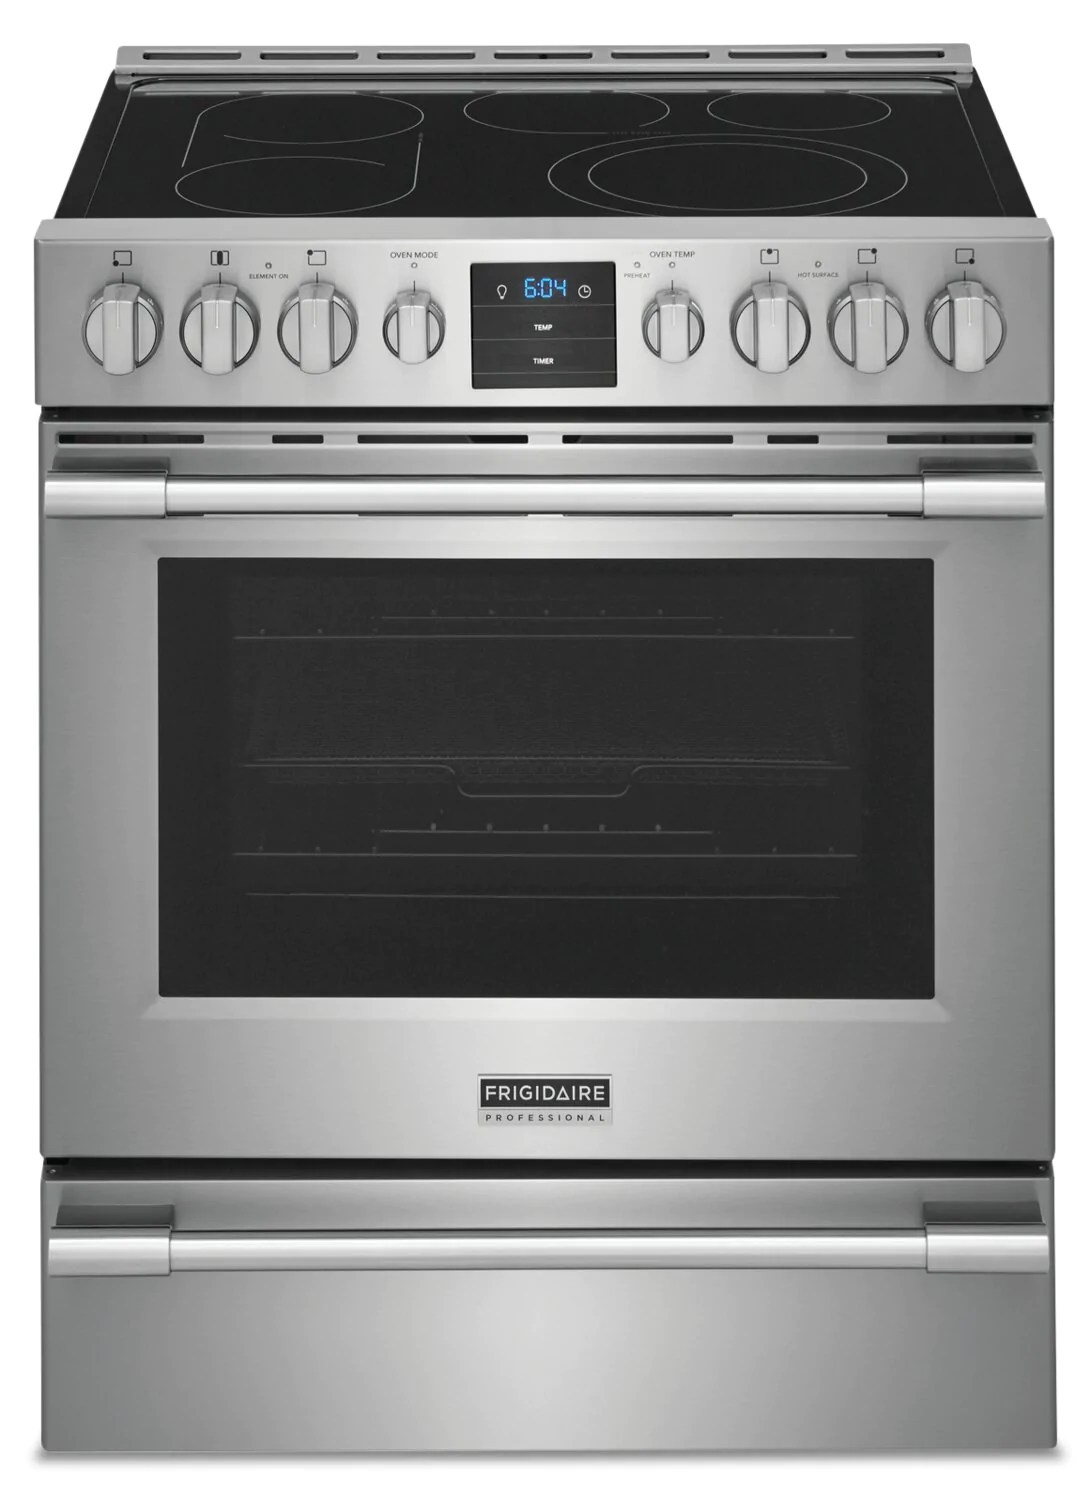 frigidaire professional 5 4 cu ft electric range with air fry pcfe307caf